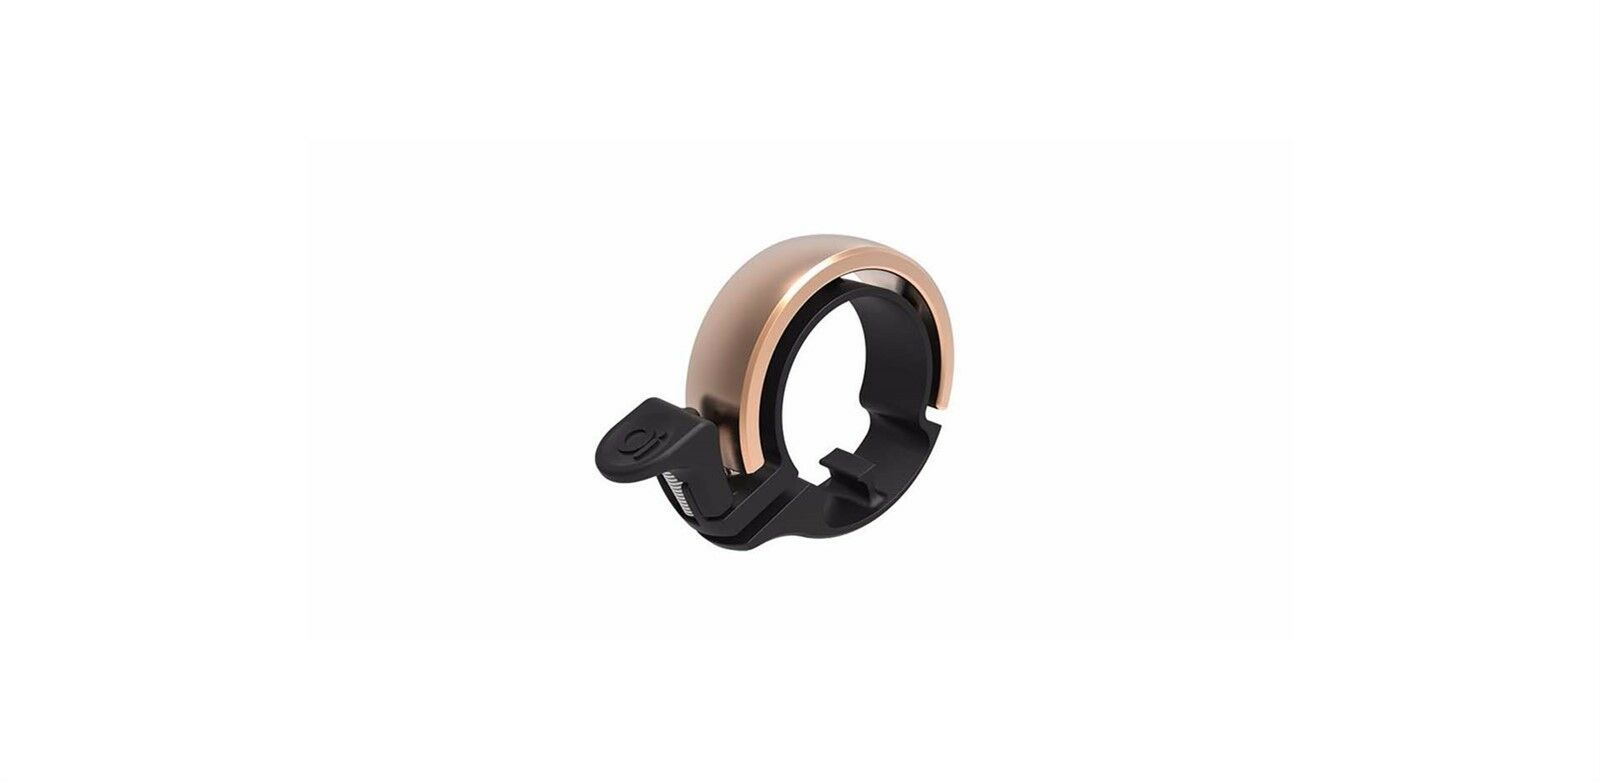 Knog Oi classique large invisible bicycle copper bell 23.8mm-31.8mm